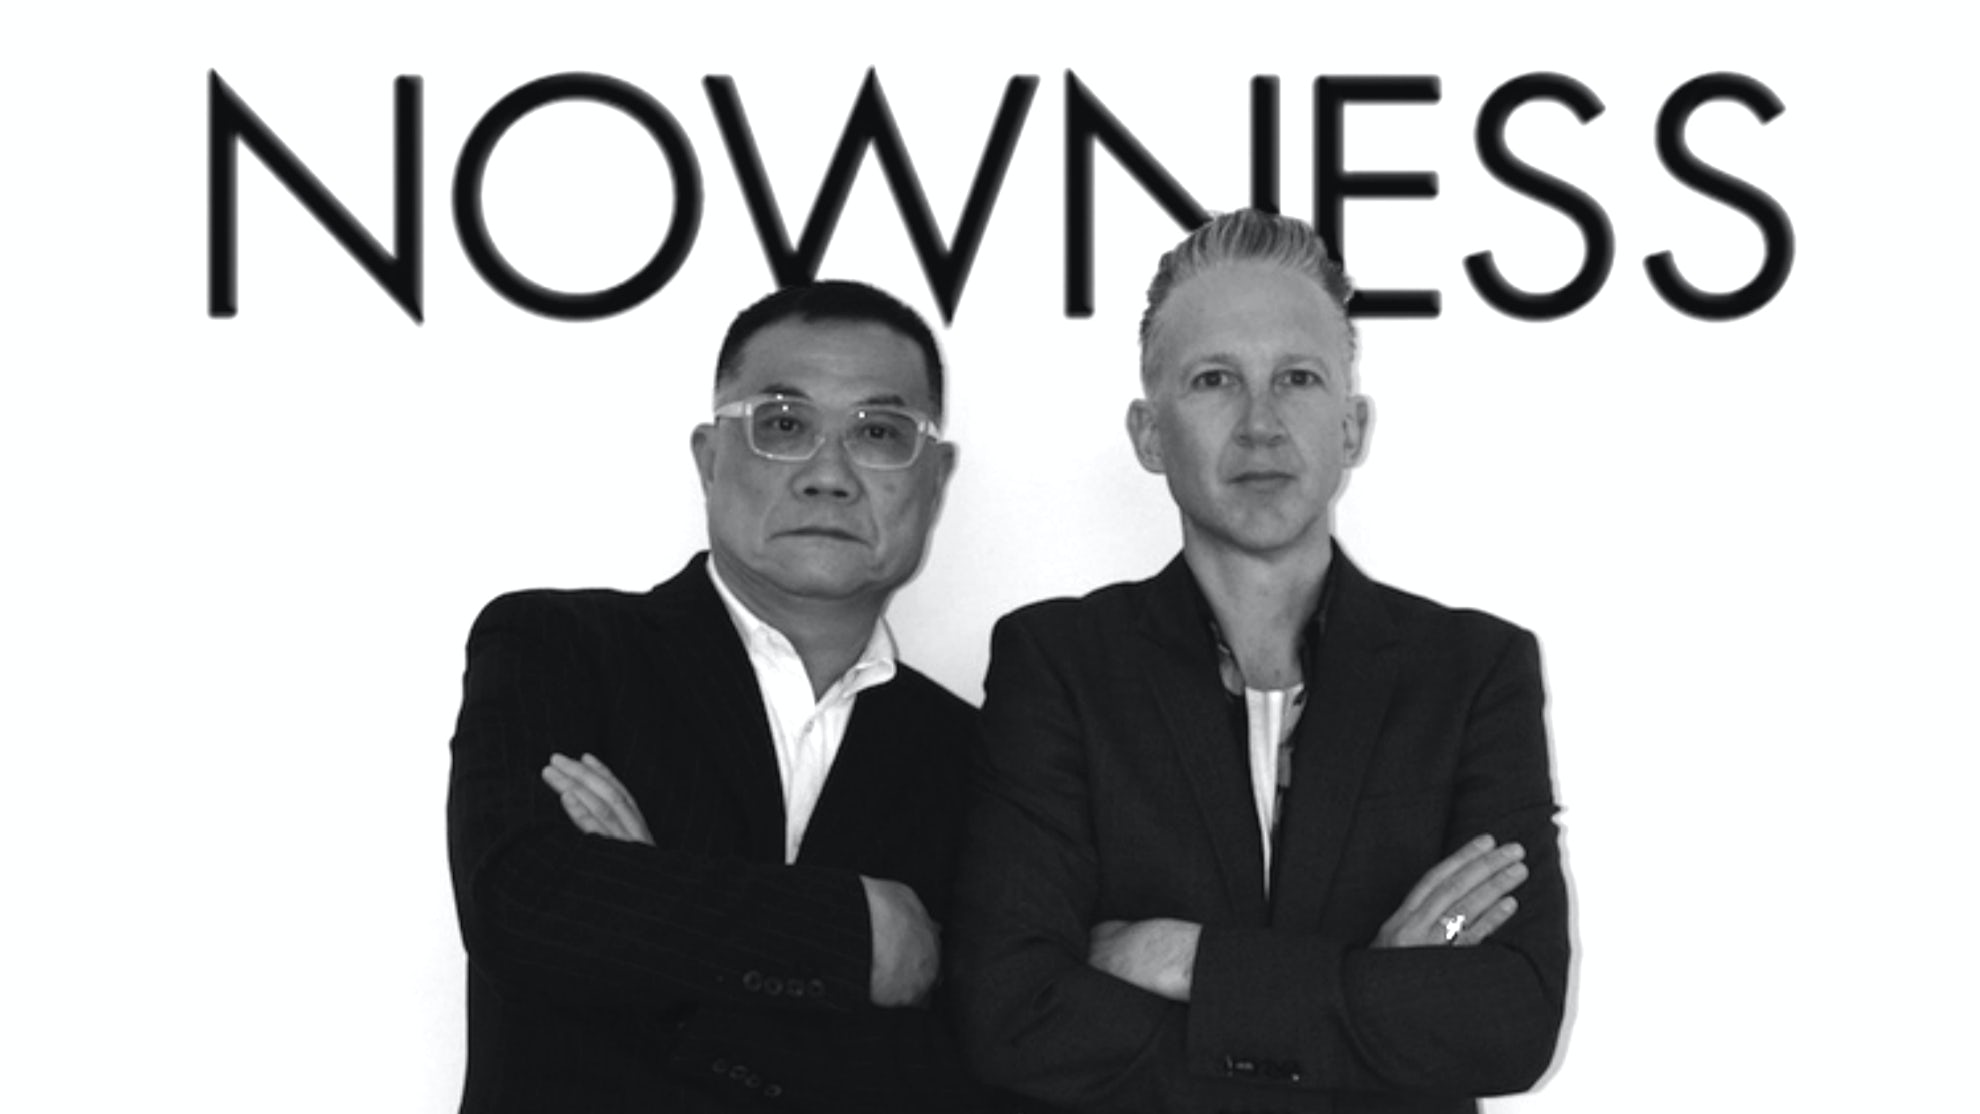 News Bites | Modern Dazed Acquires Nowness Stake, Kérastase On-Demand, Elie Top Online